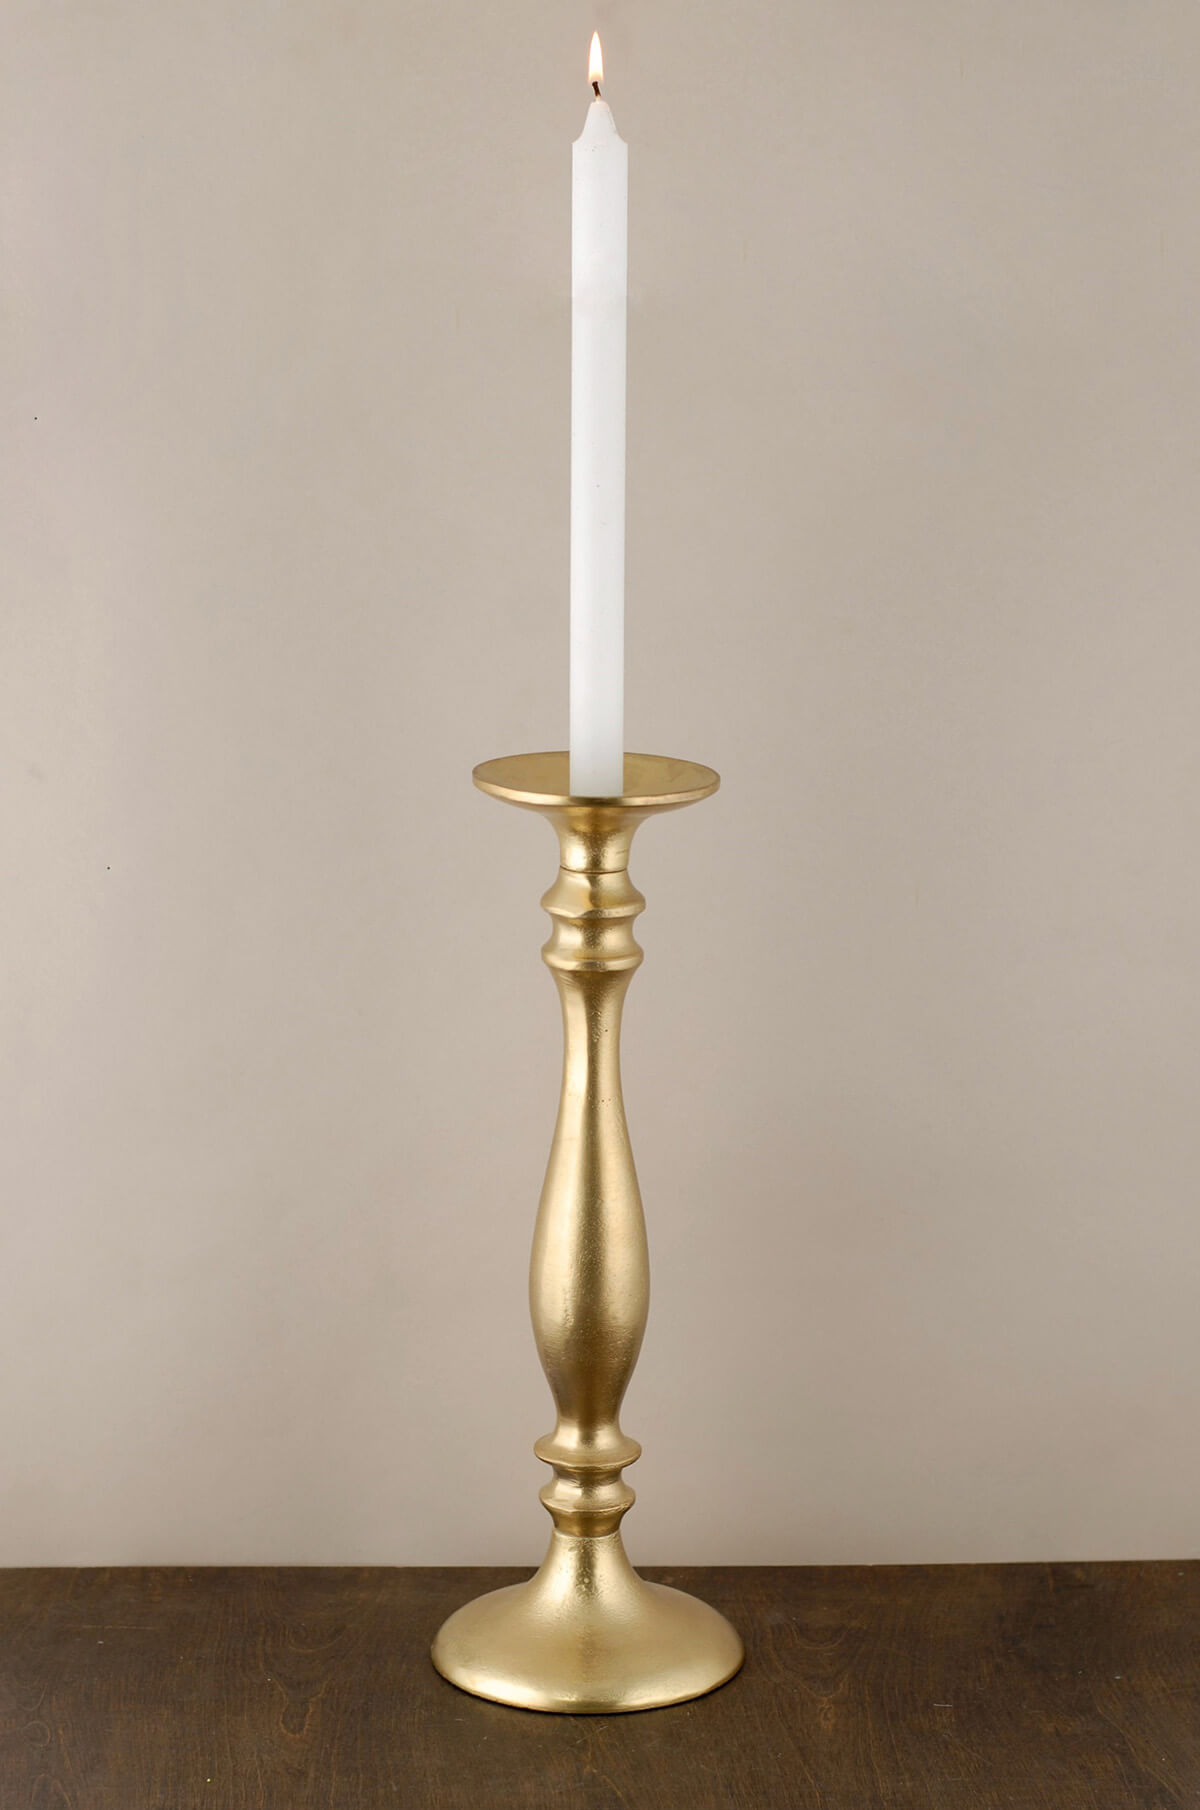 Shop Michaels for candle holders to express your style - delivered right to your door! Free shipping on all orders over $